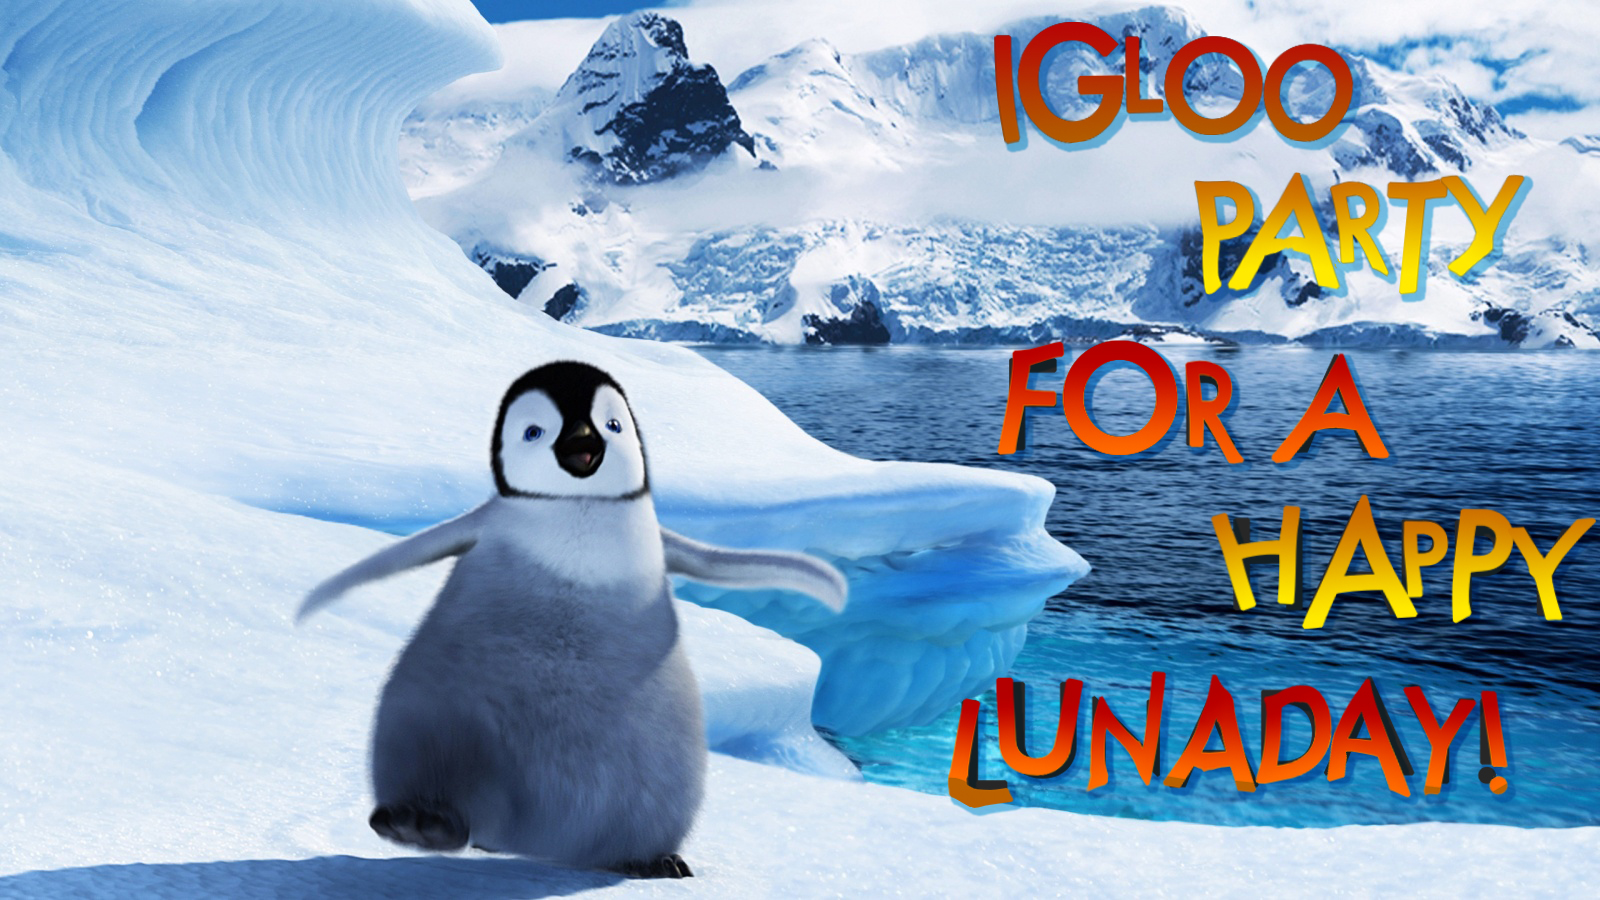 Igloo Party For a Happy LunaDay!